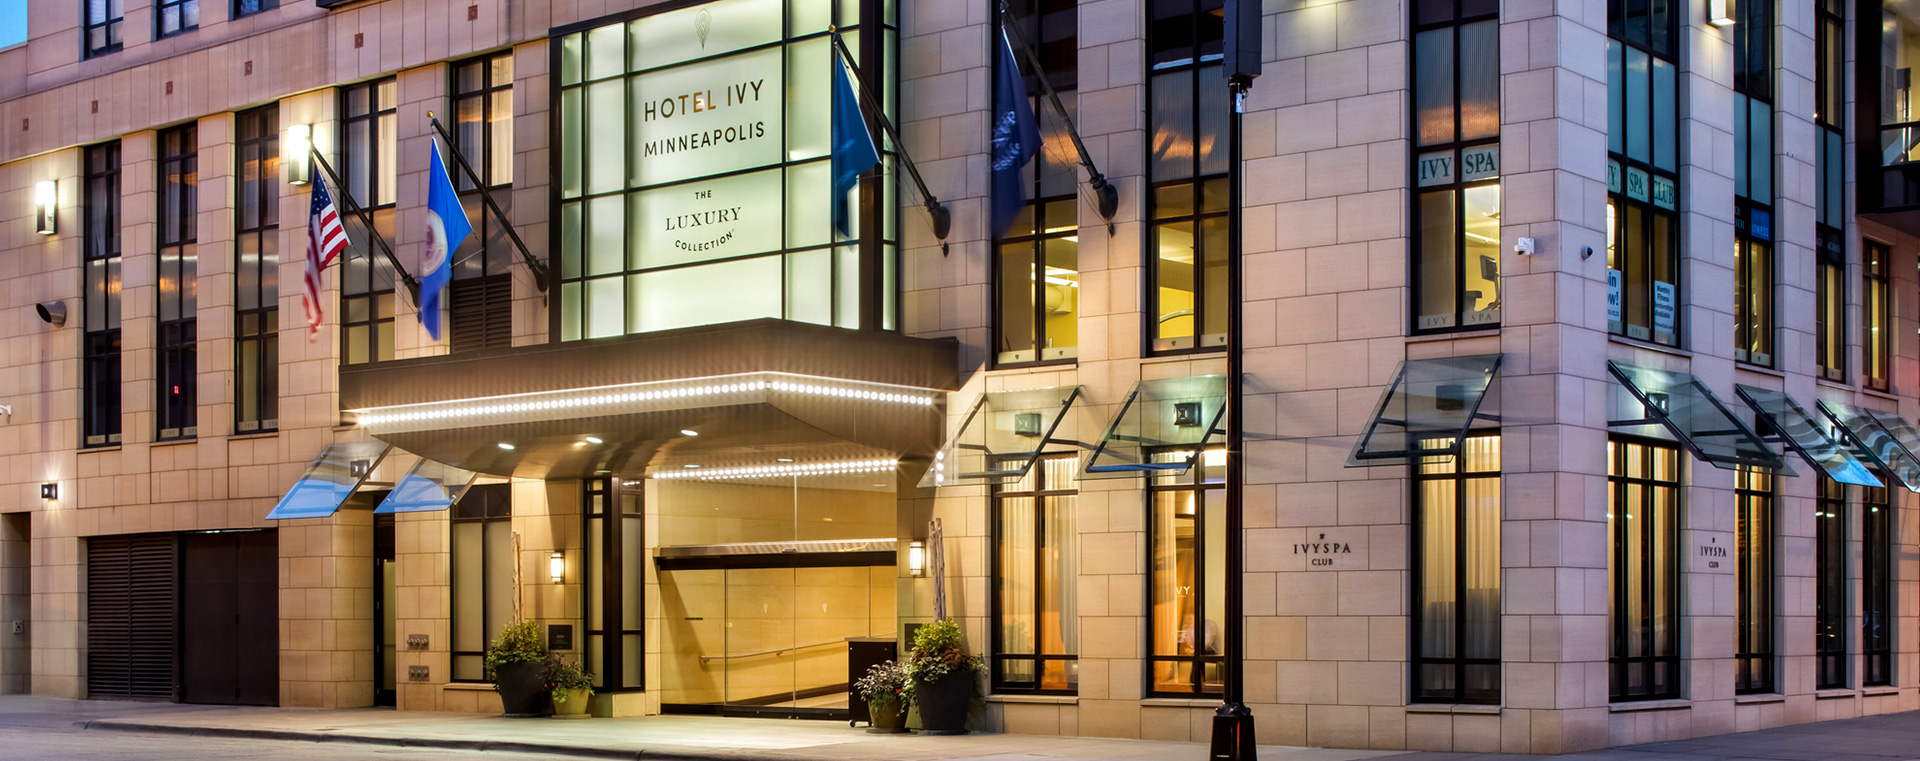 Hotel Ivy, A Luxury Collection Hotel, Minneapolis Contact